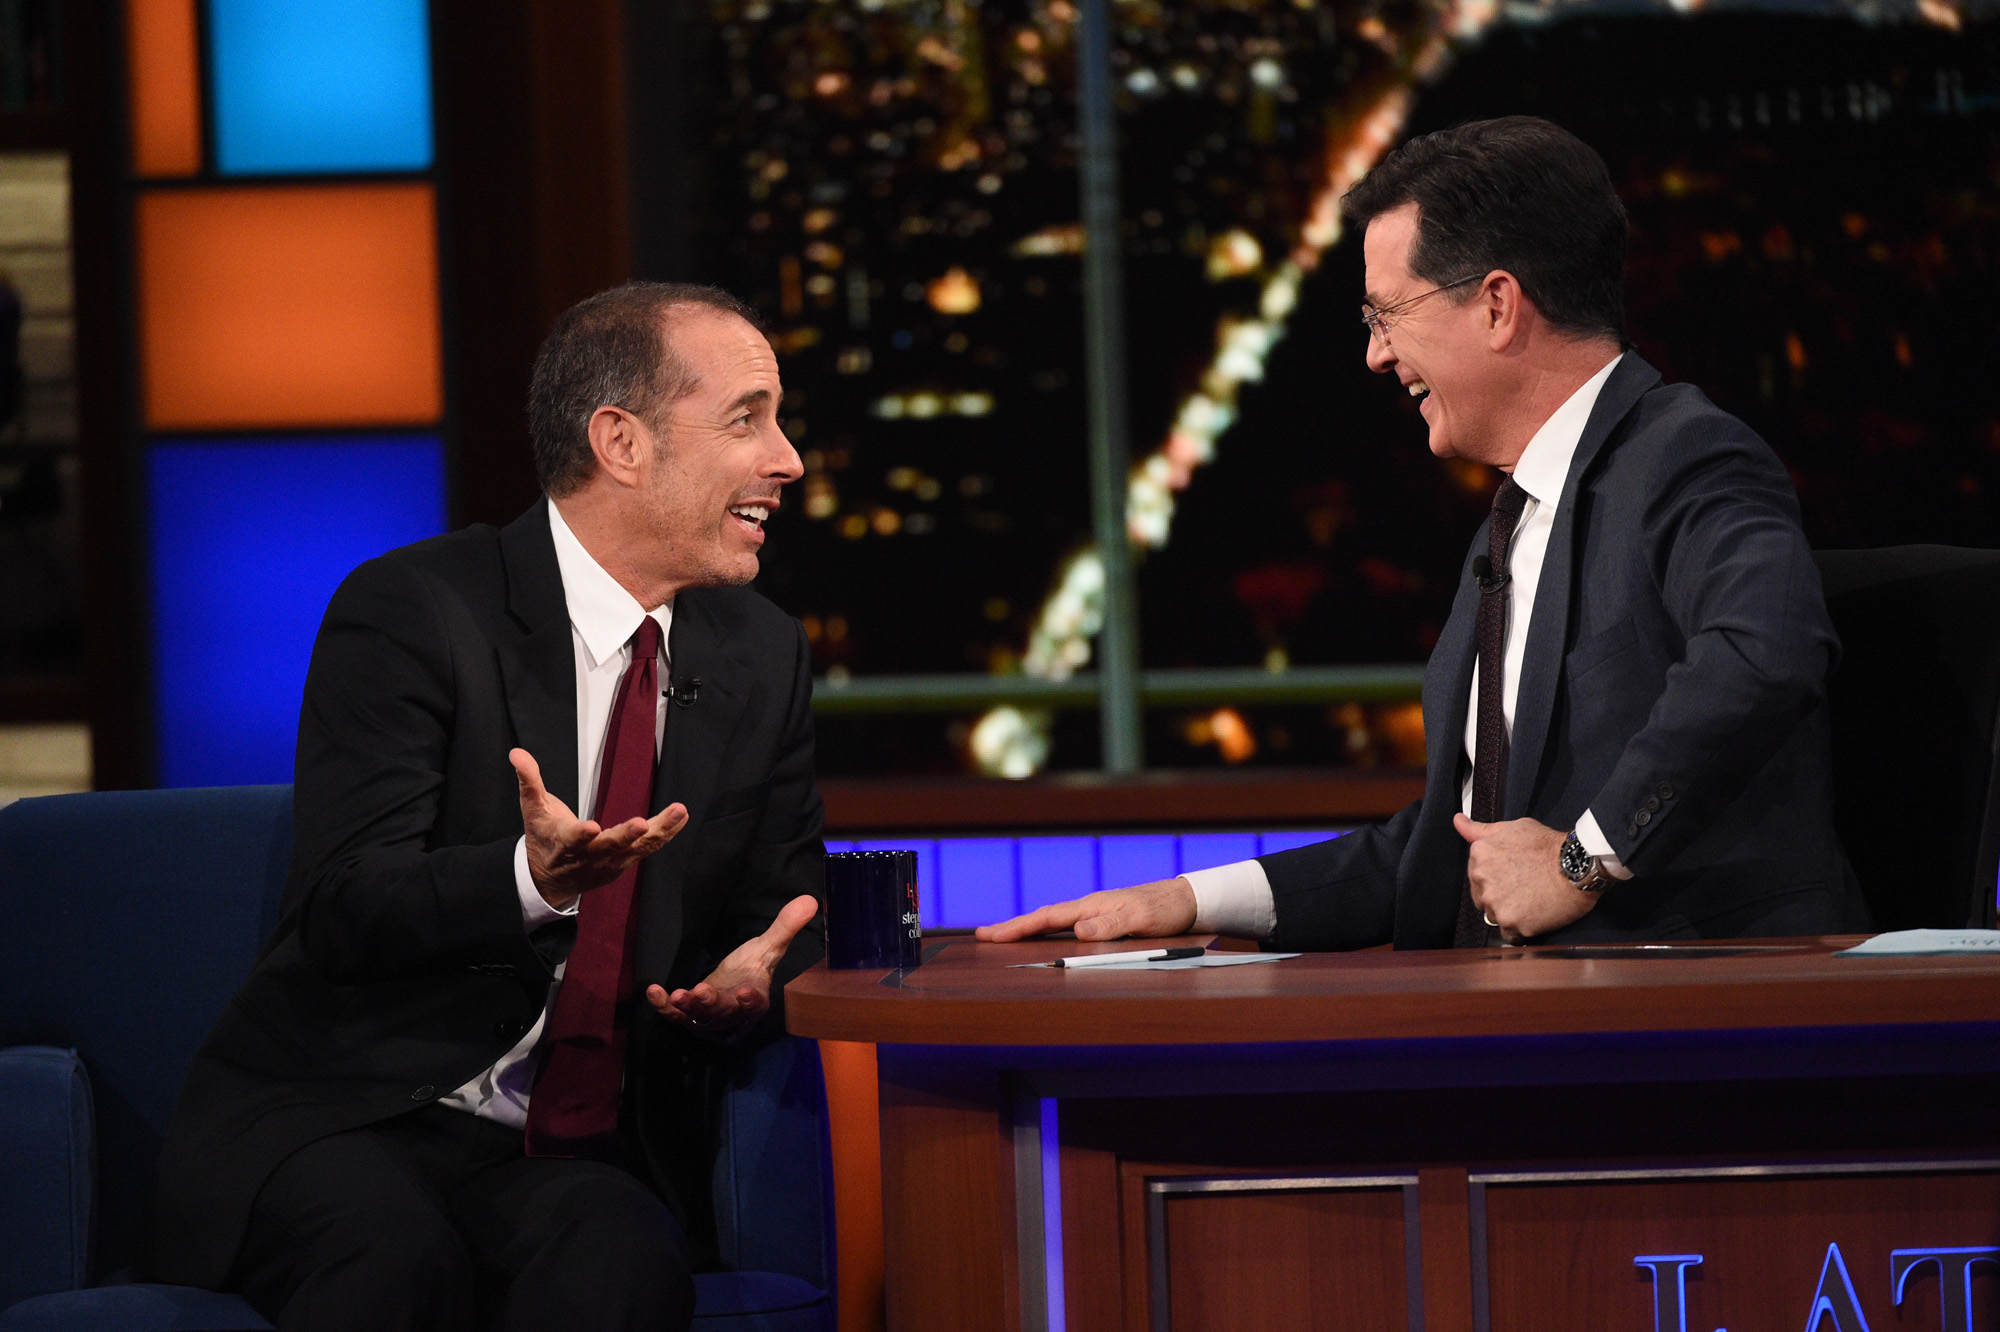 Jerry Seinfeld and Stephen Colbert